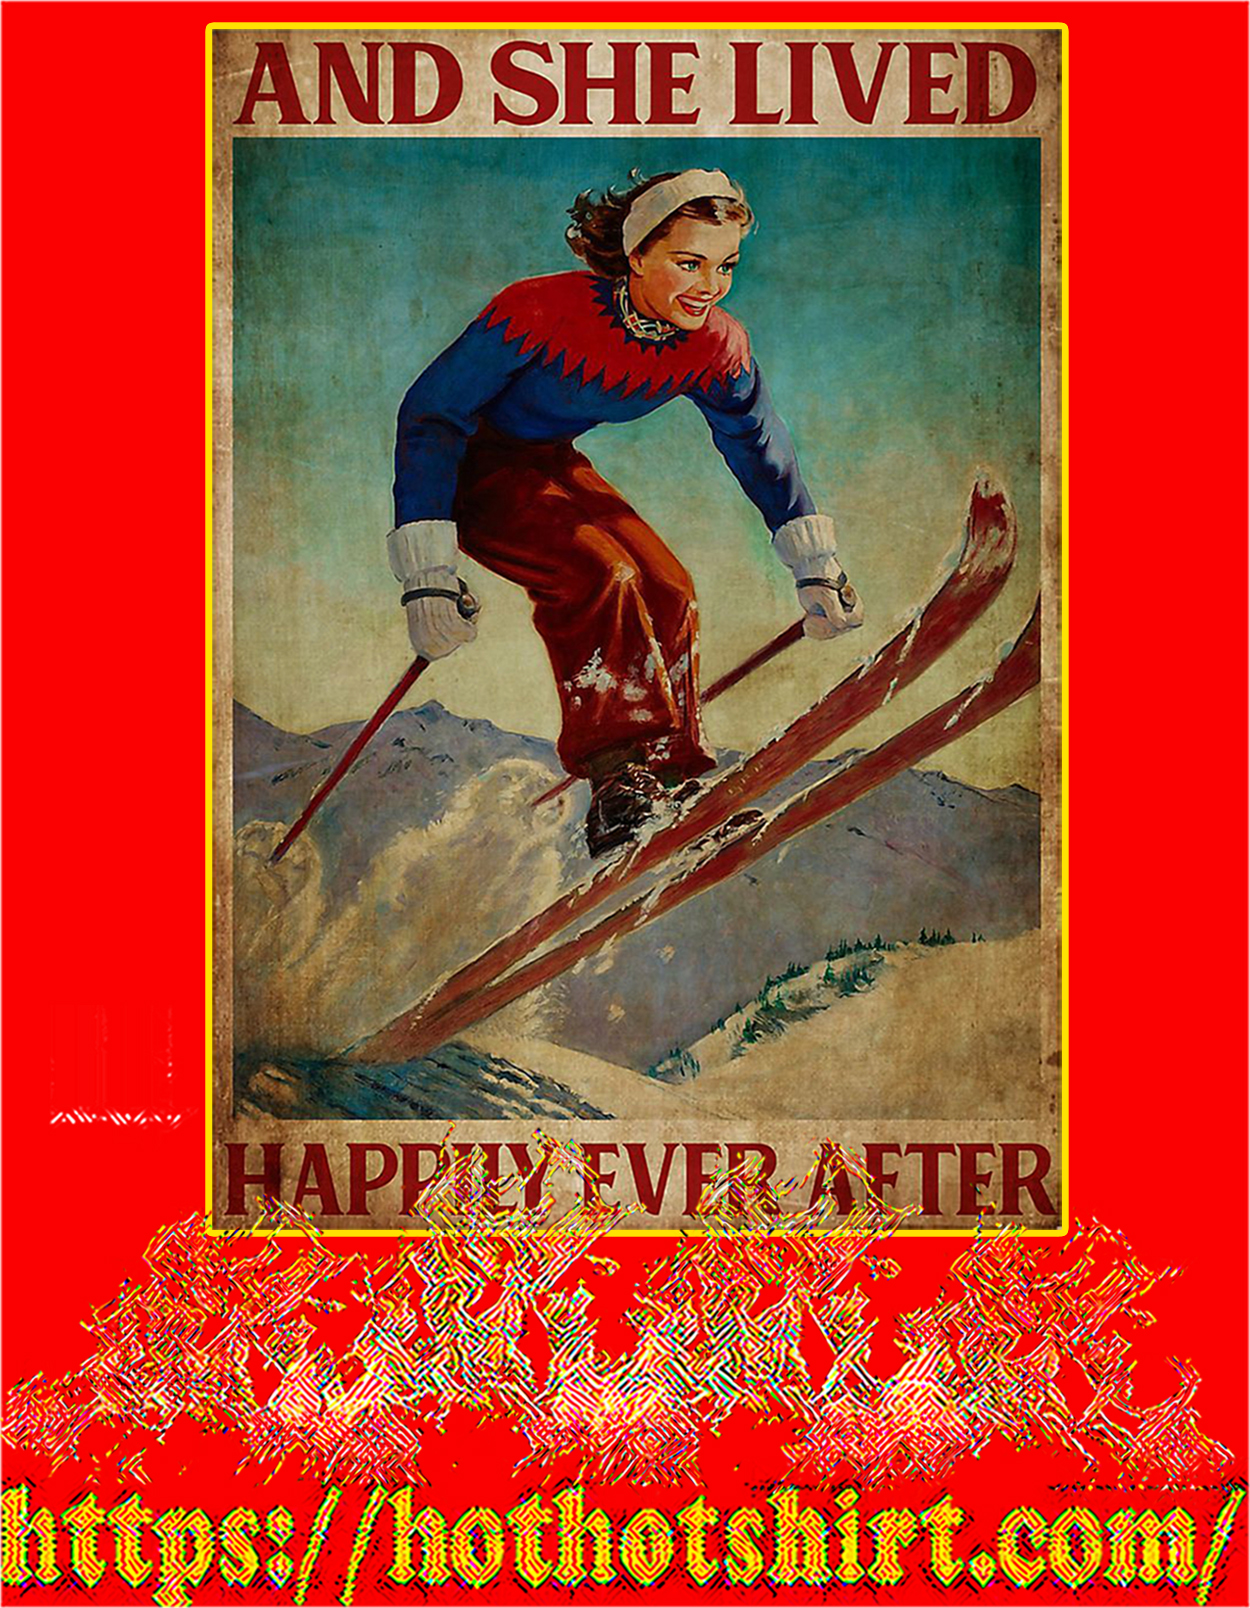 Poster Skiing And she lived happily ever after -